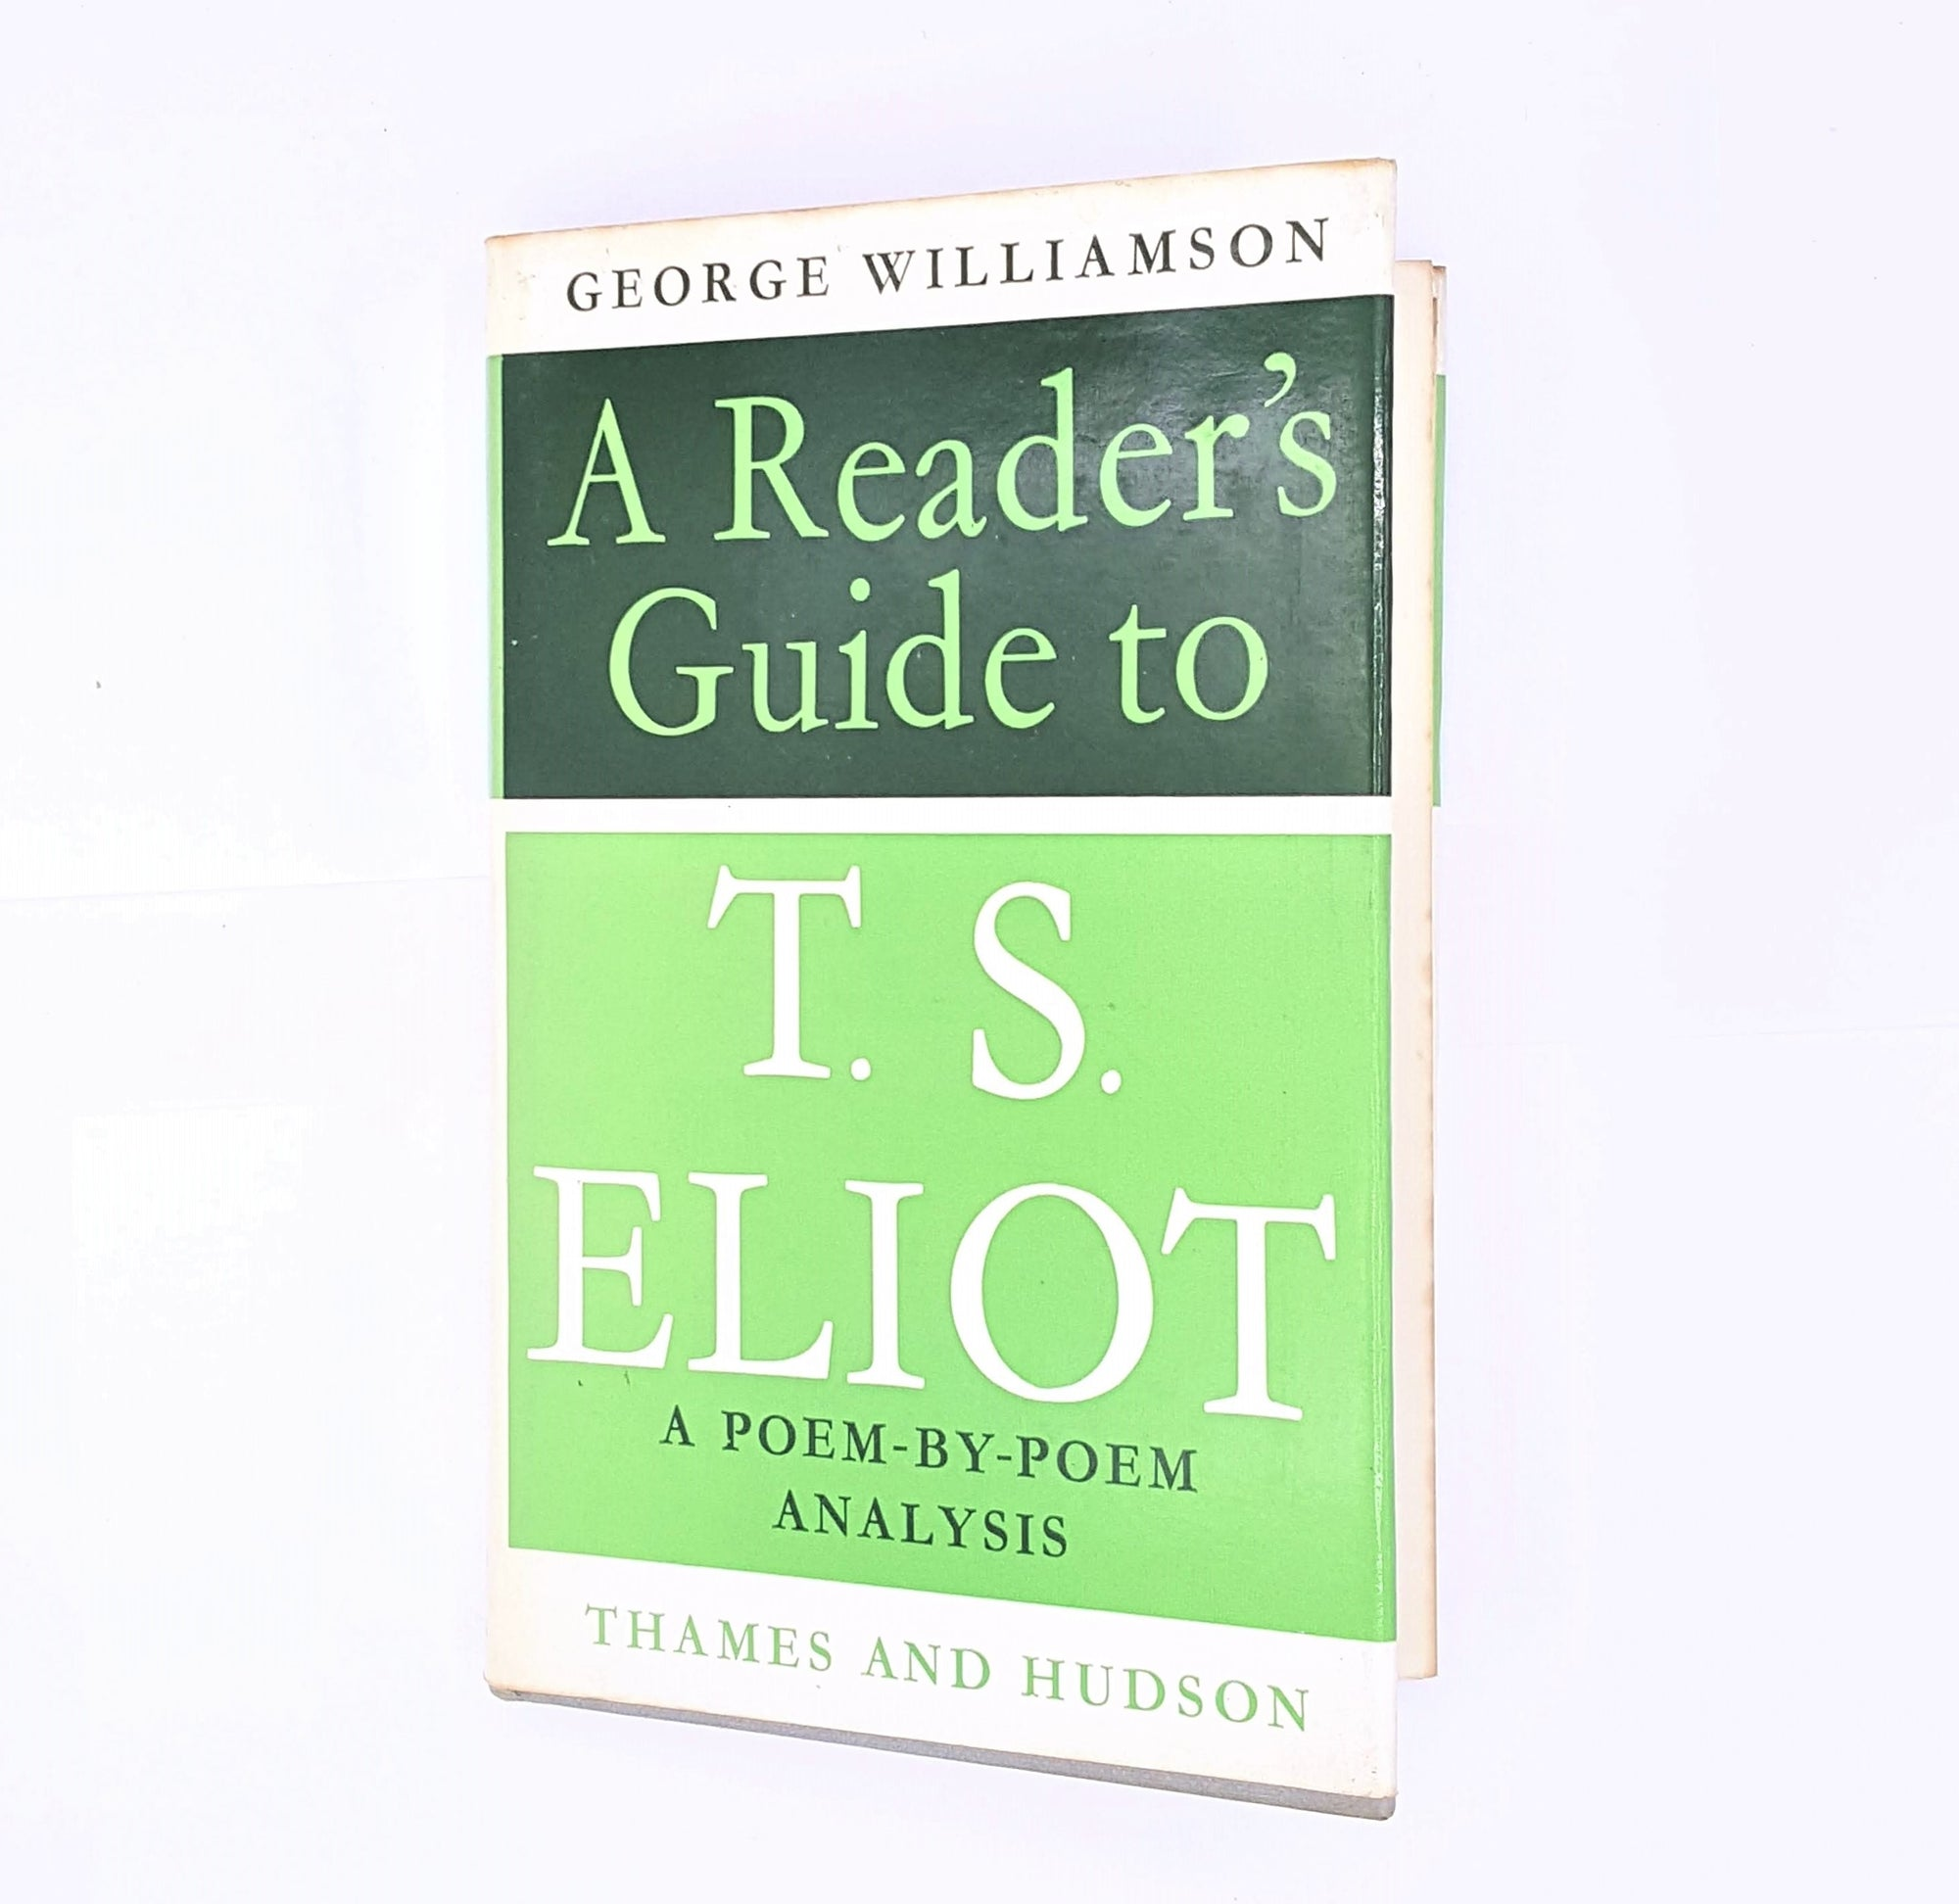 George Williamson's A Reader's Guide to T.S. Eliot 1970